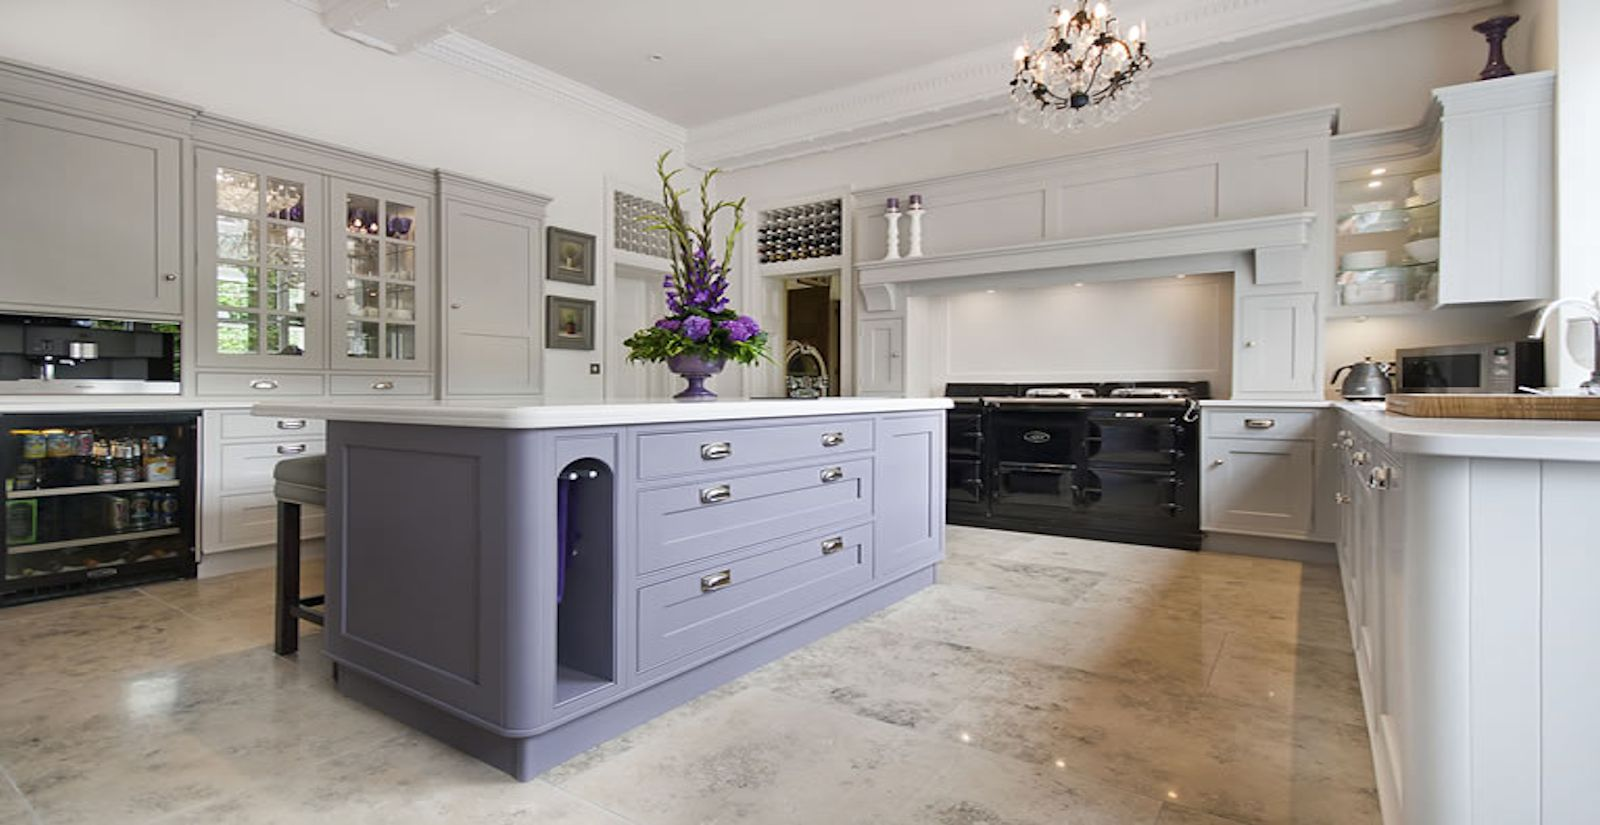 Elegant A Beautiful Osbornes Of Ilkeston Hand Painted Kitchen. Idea